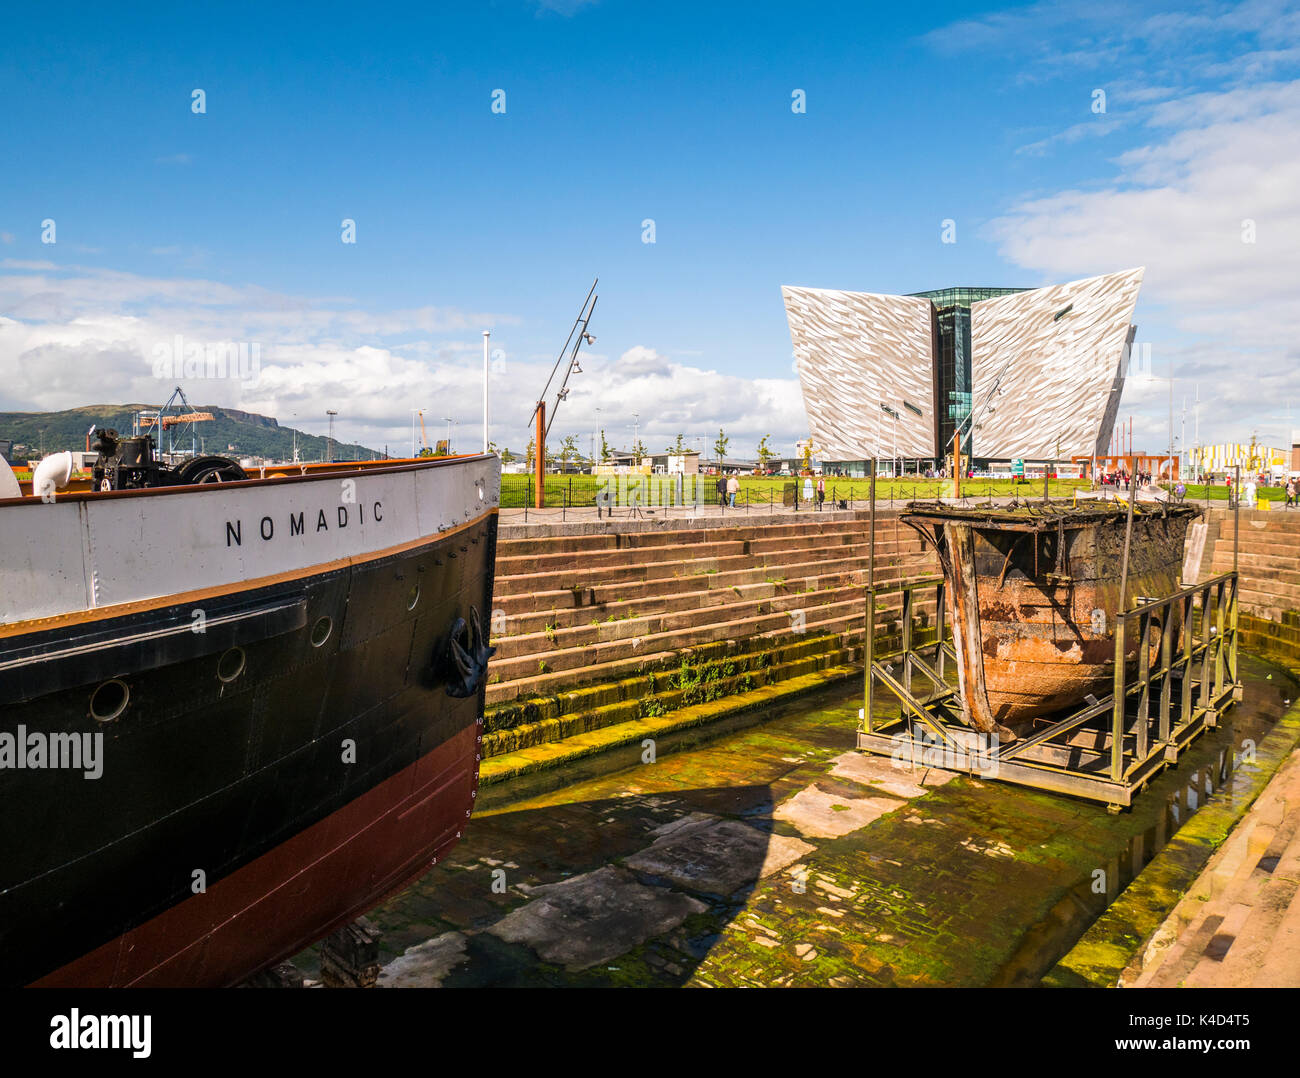 Bow of SS Nomadic with Titanic Belfast in background - Stock Image